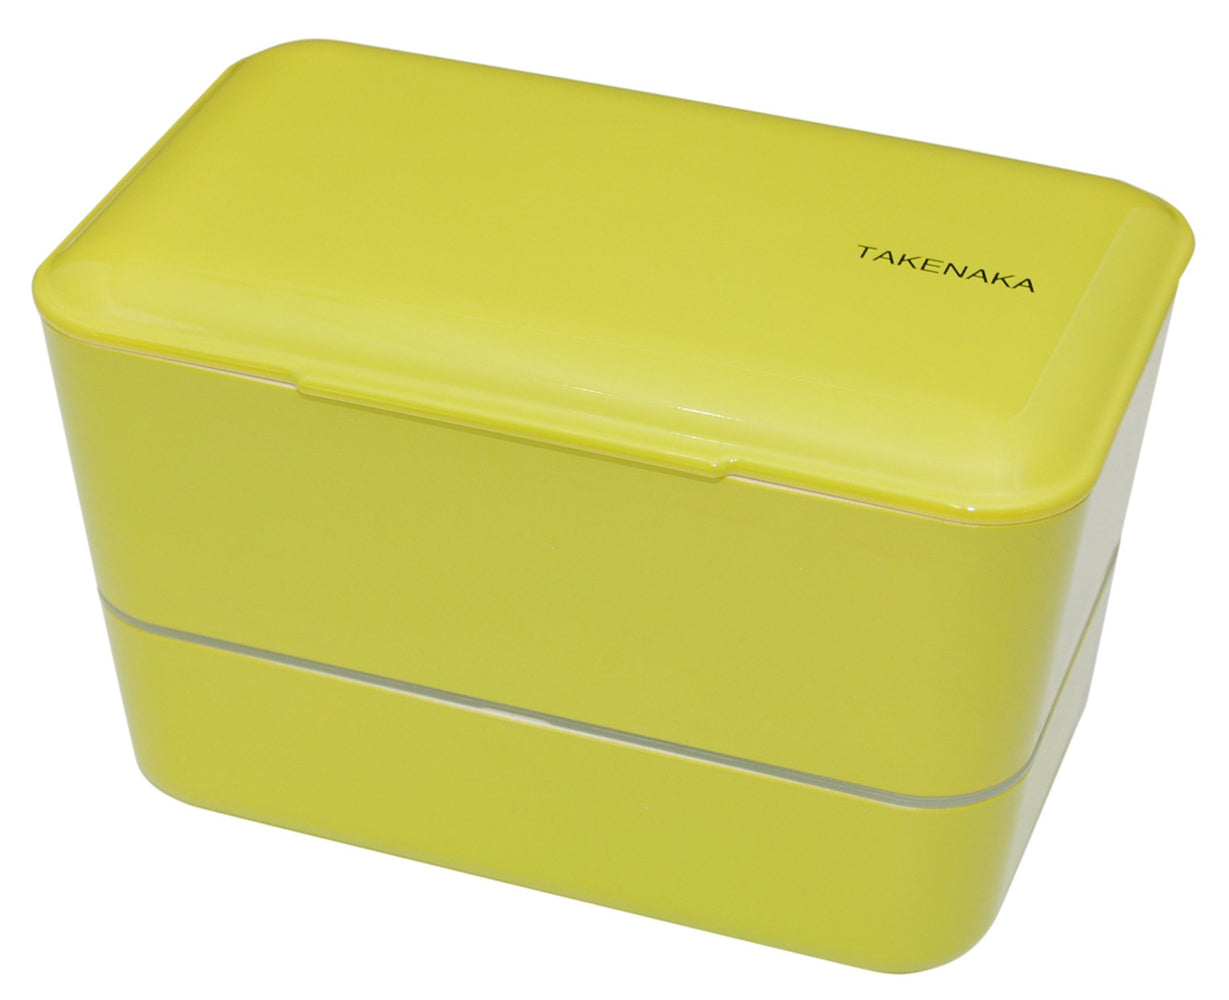 Expanded Double Bento Box | Green by Takenaka - Bento&con the Bento Boxes specialist from Kyoto